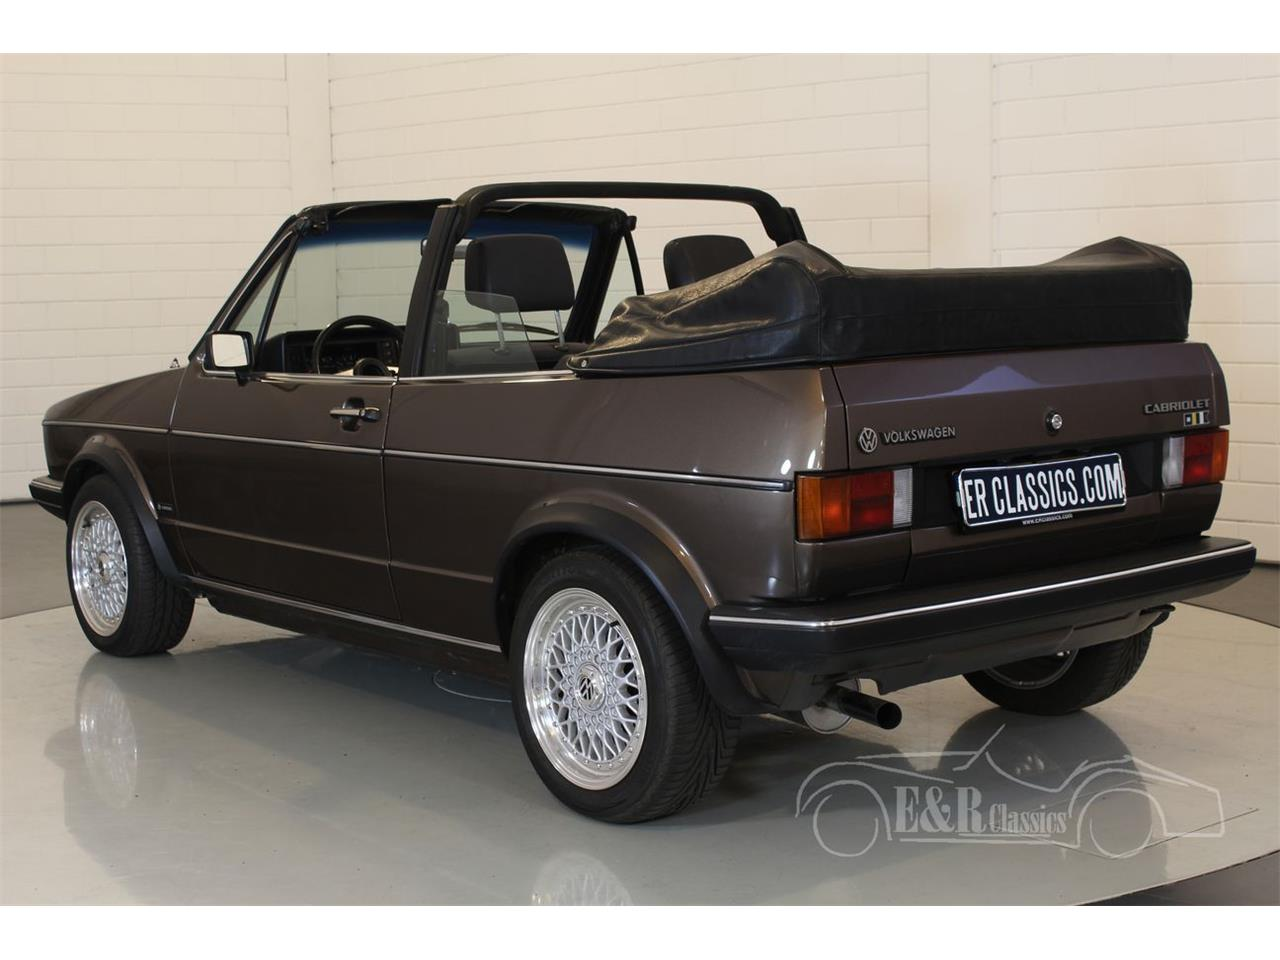 Large Picture of '84 Volkswagen Golf - $19,100.00 - PH4B